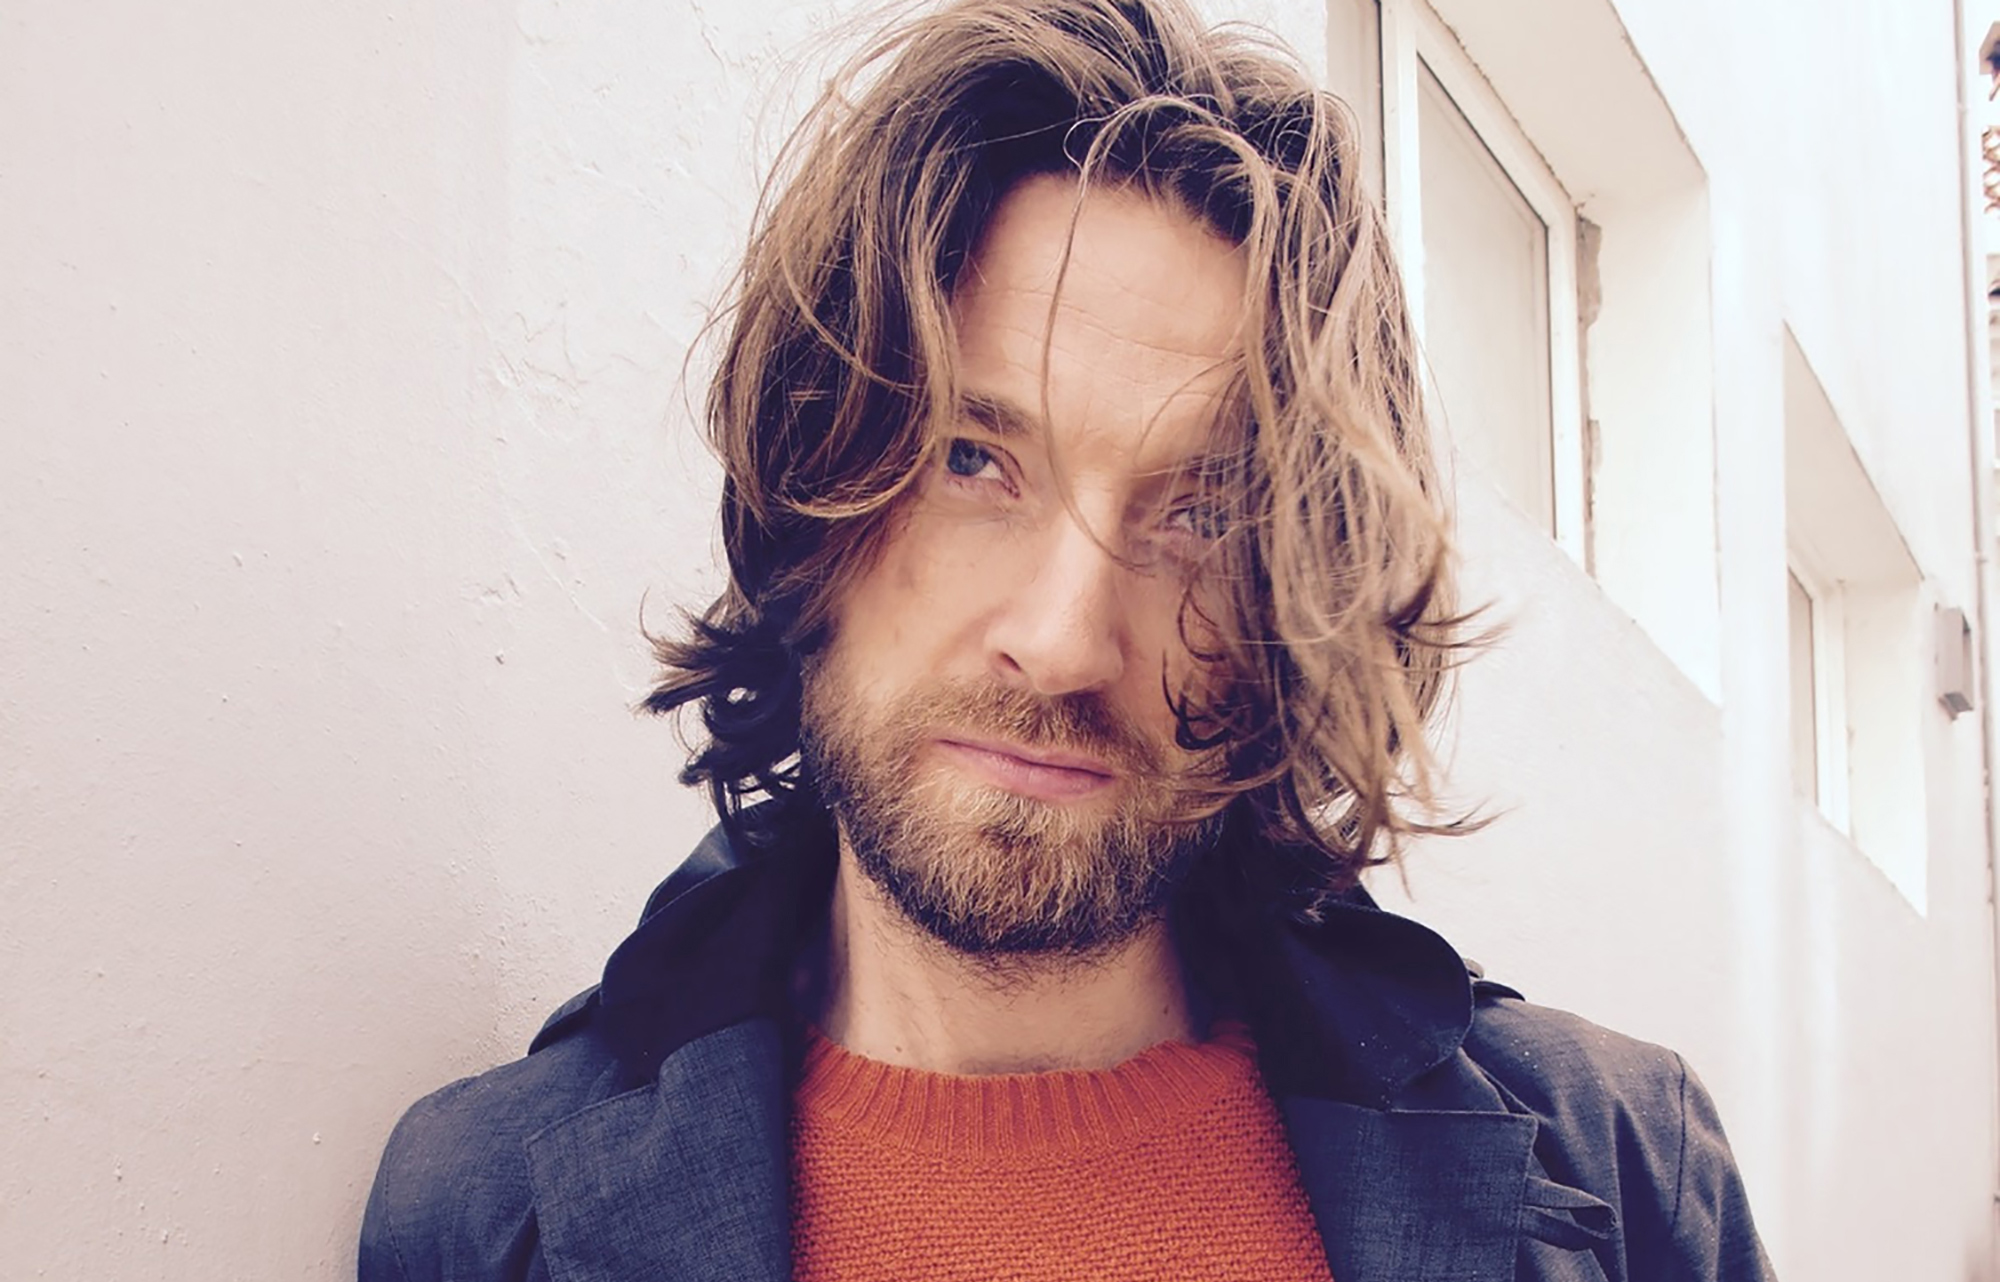 Nordic Playlist #111 – Eirik Glambek Bøe, Norway